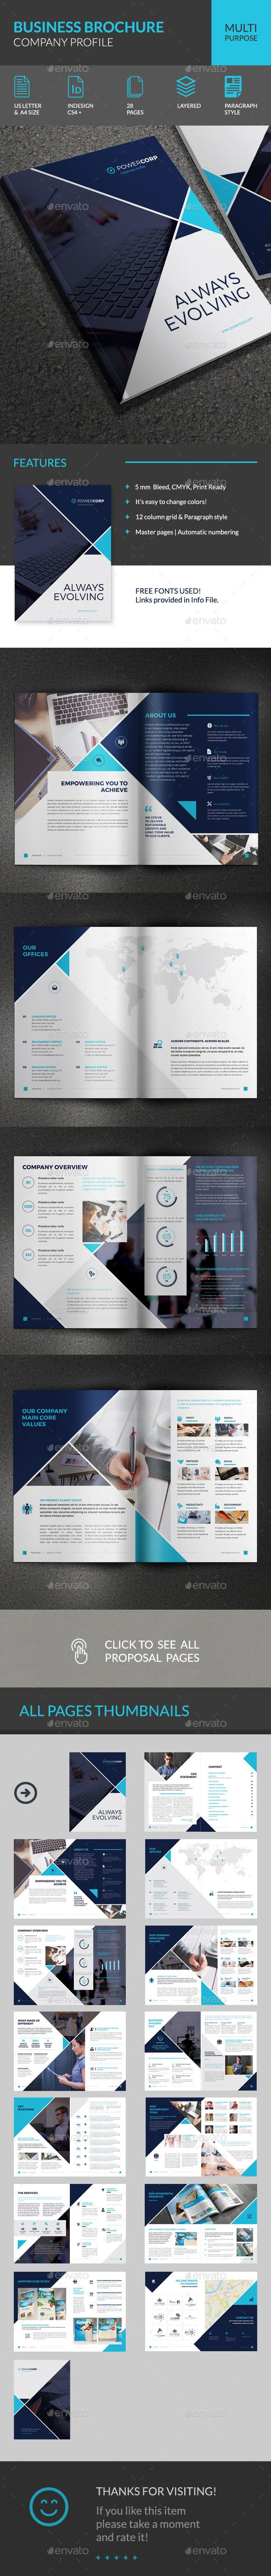 PowerCorp Business Brochure - Corporate Profile Template PSD. Download here: http://graphicriver.net/item/powercorp-business-brochure-corporate-profile/16079324?ref=ksioks もっと見る